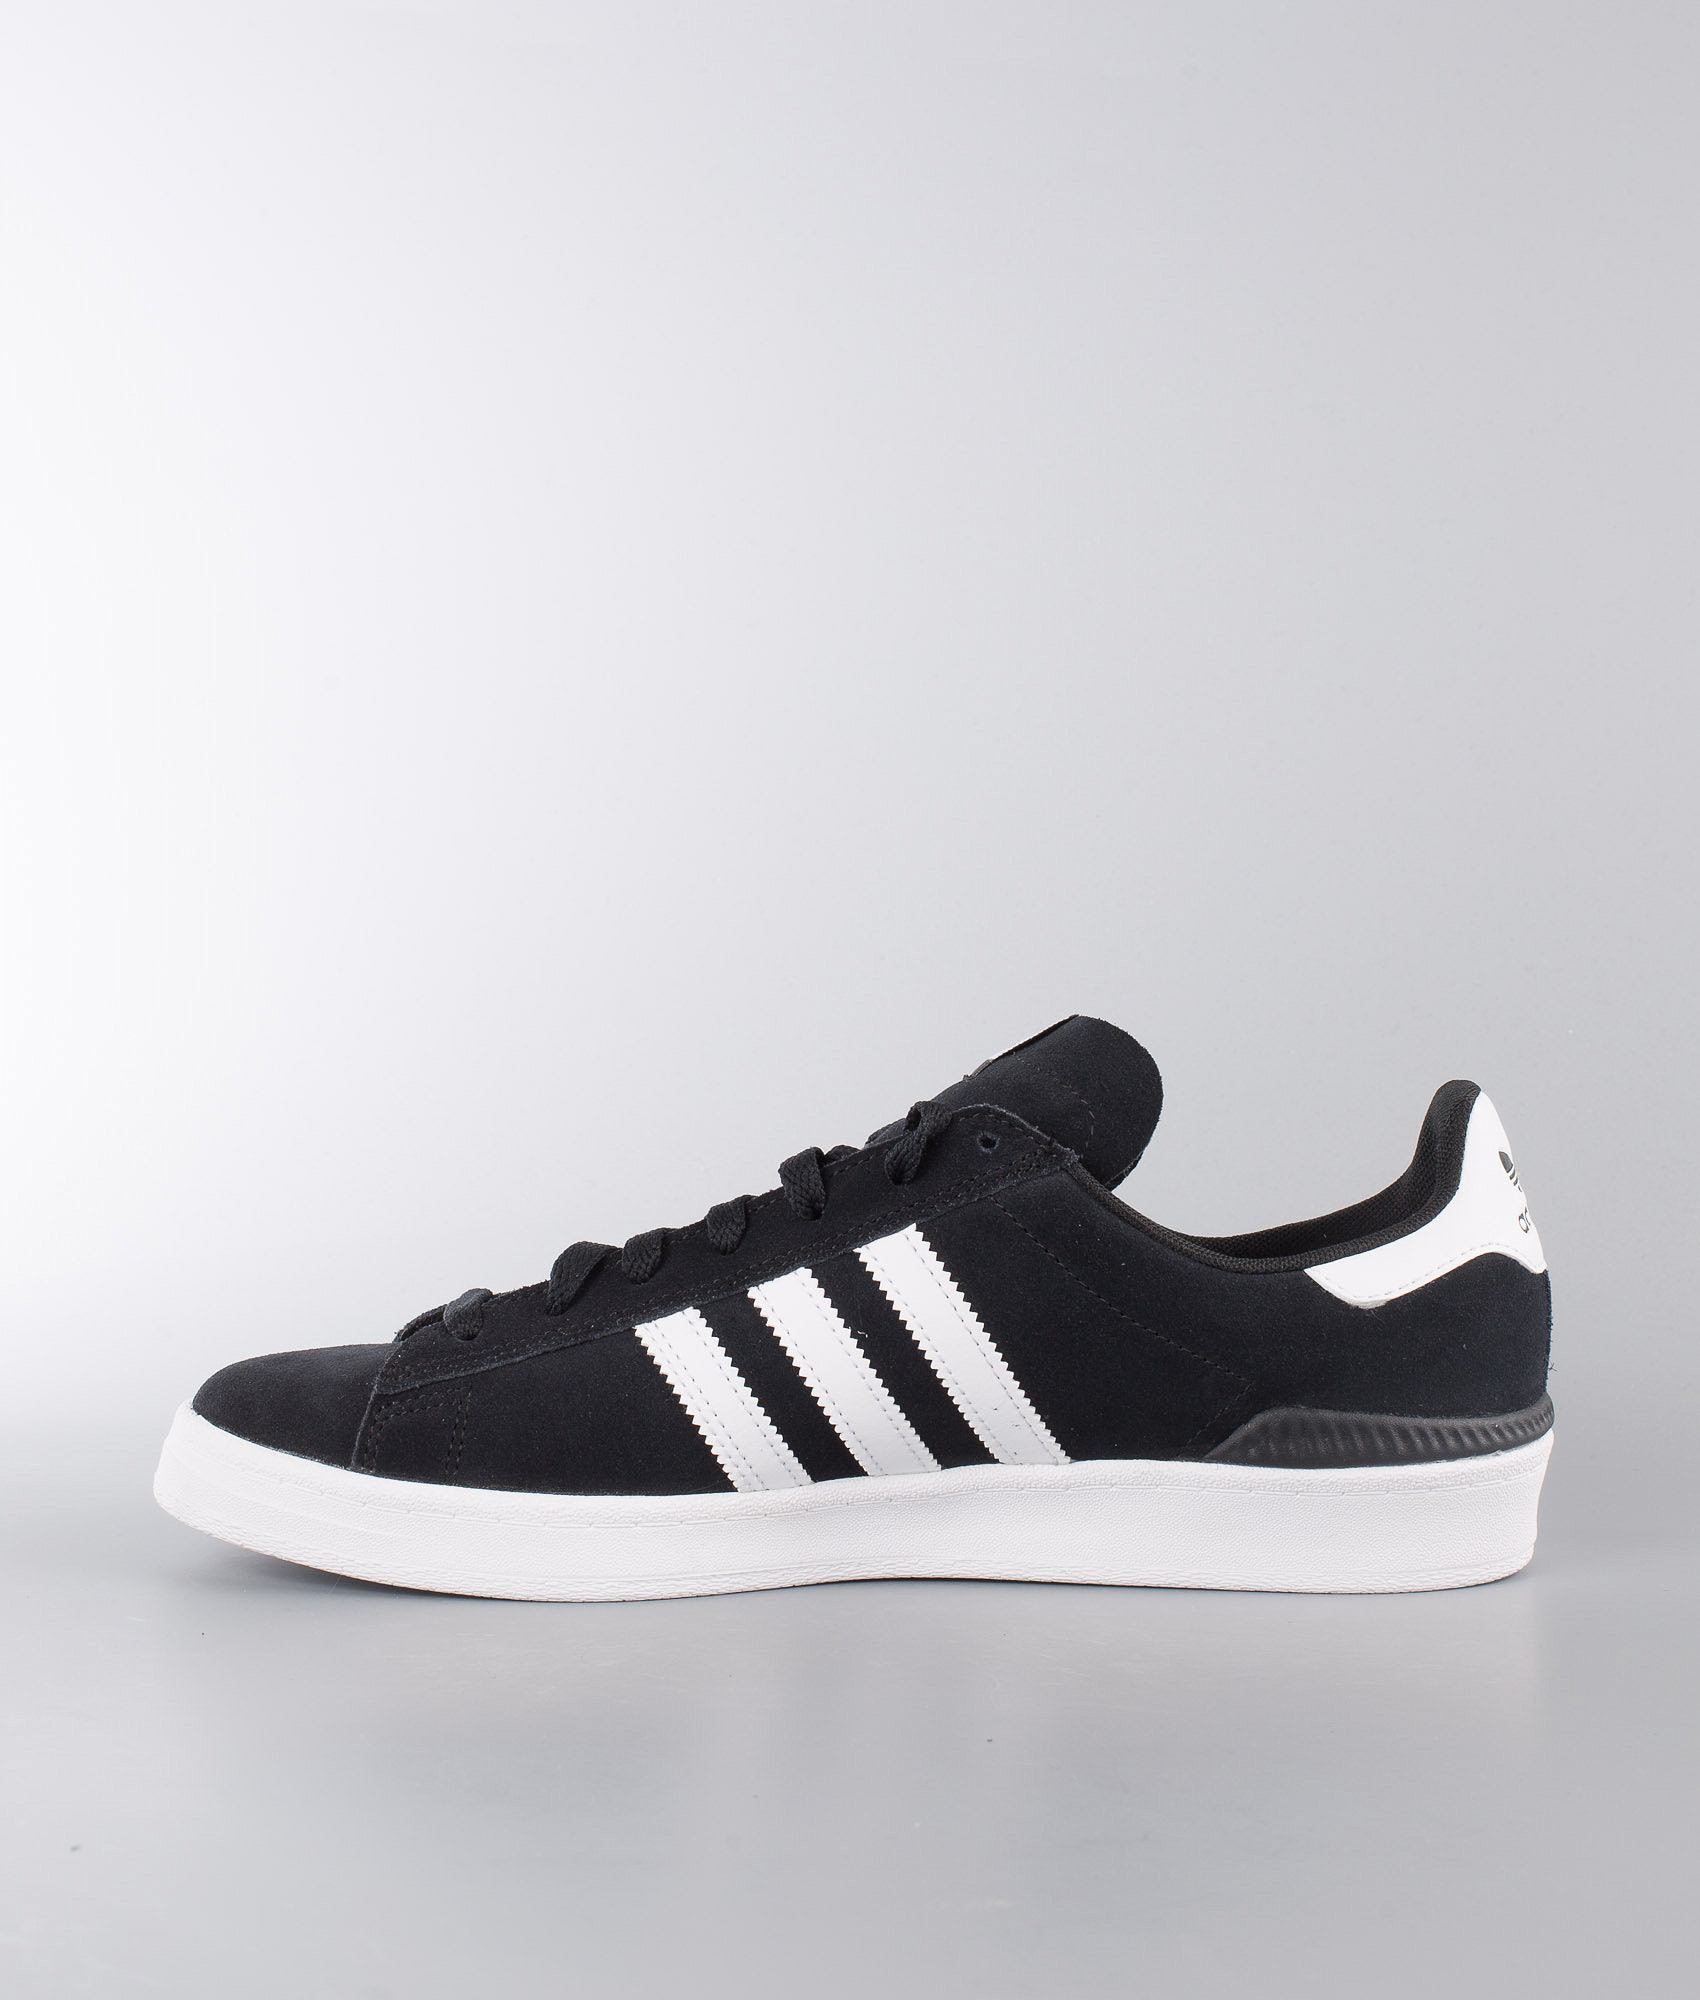 best website 02790 acce7 Adidas Skateboarding Campus Adv Scarpe